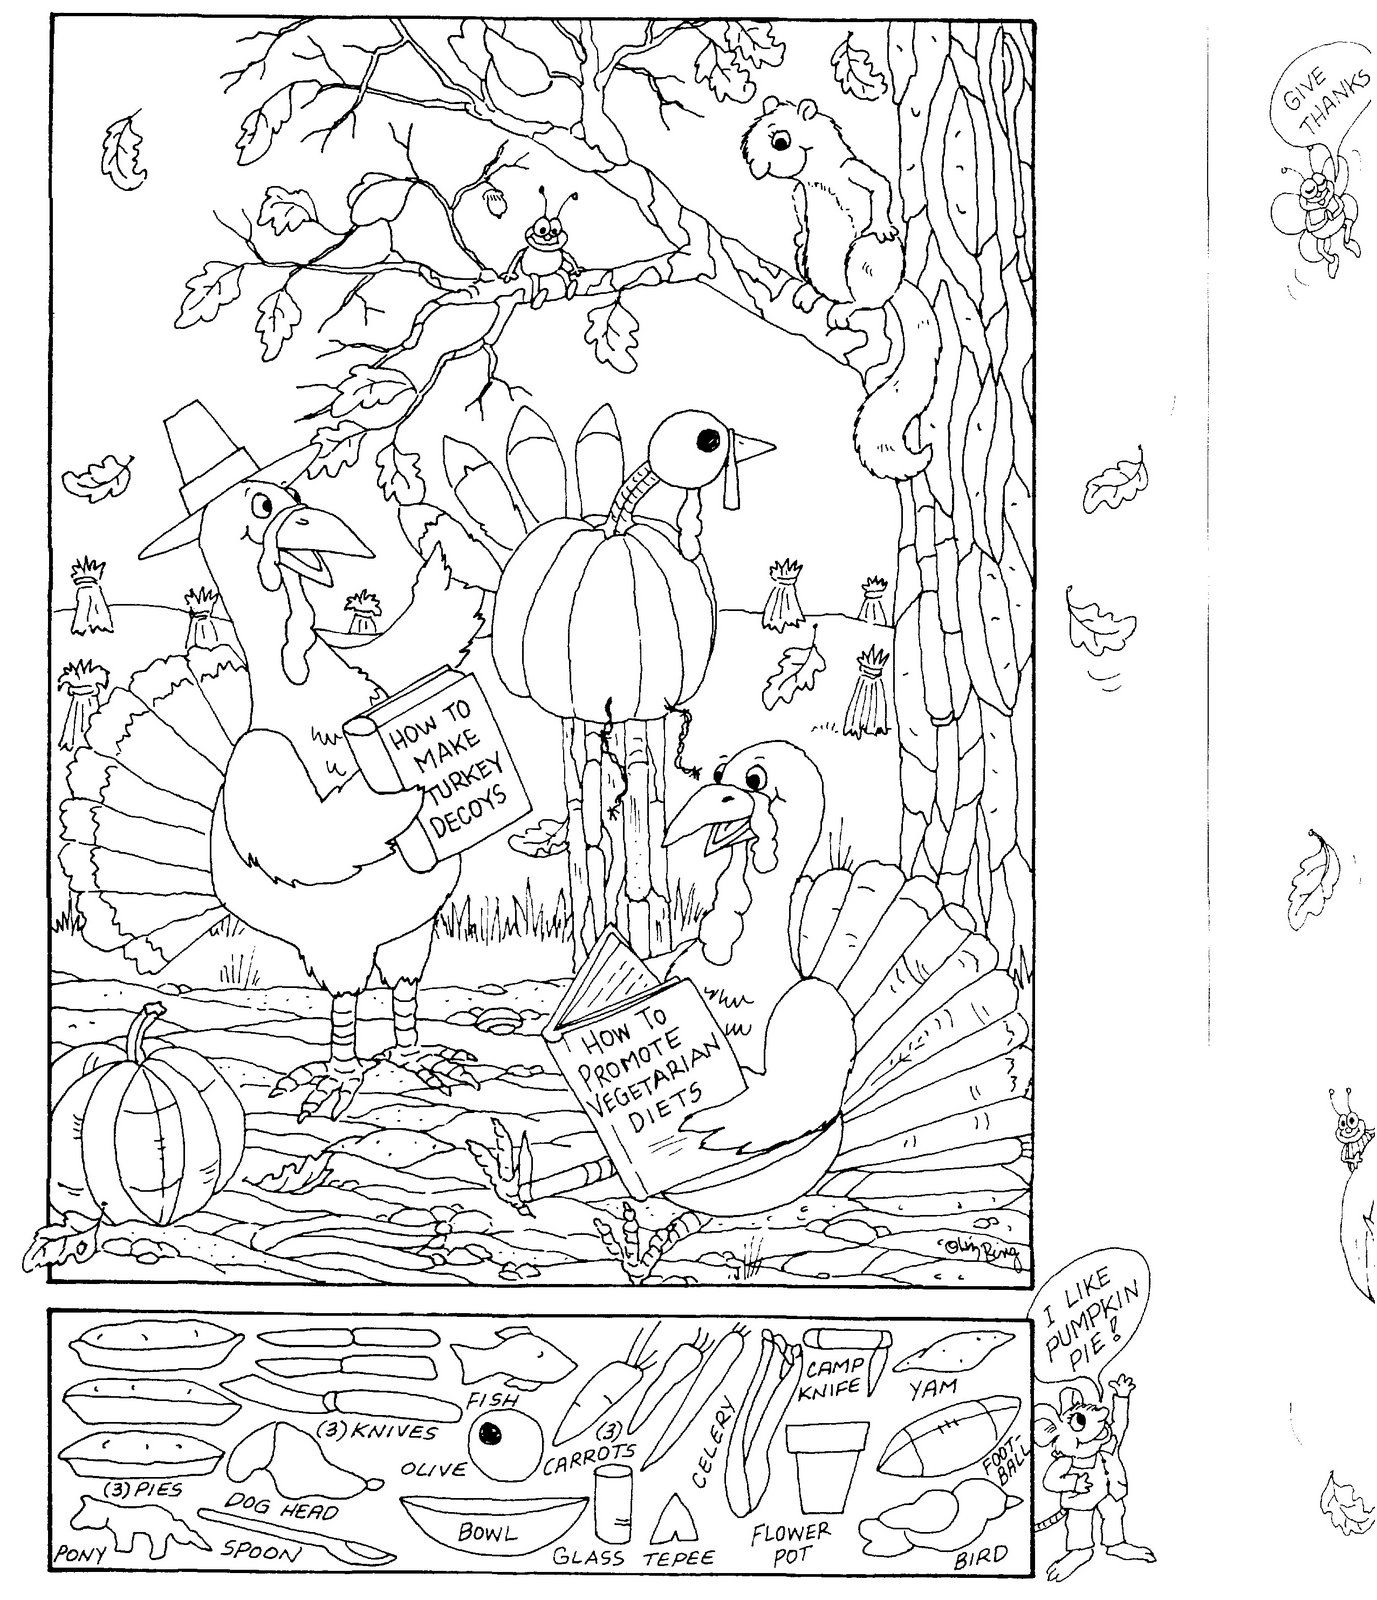 hidden pictures publishing coloring page and hidden picture puzzle for thanksgiving